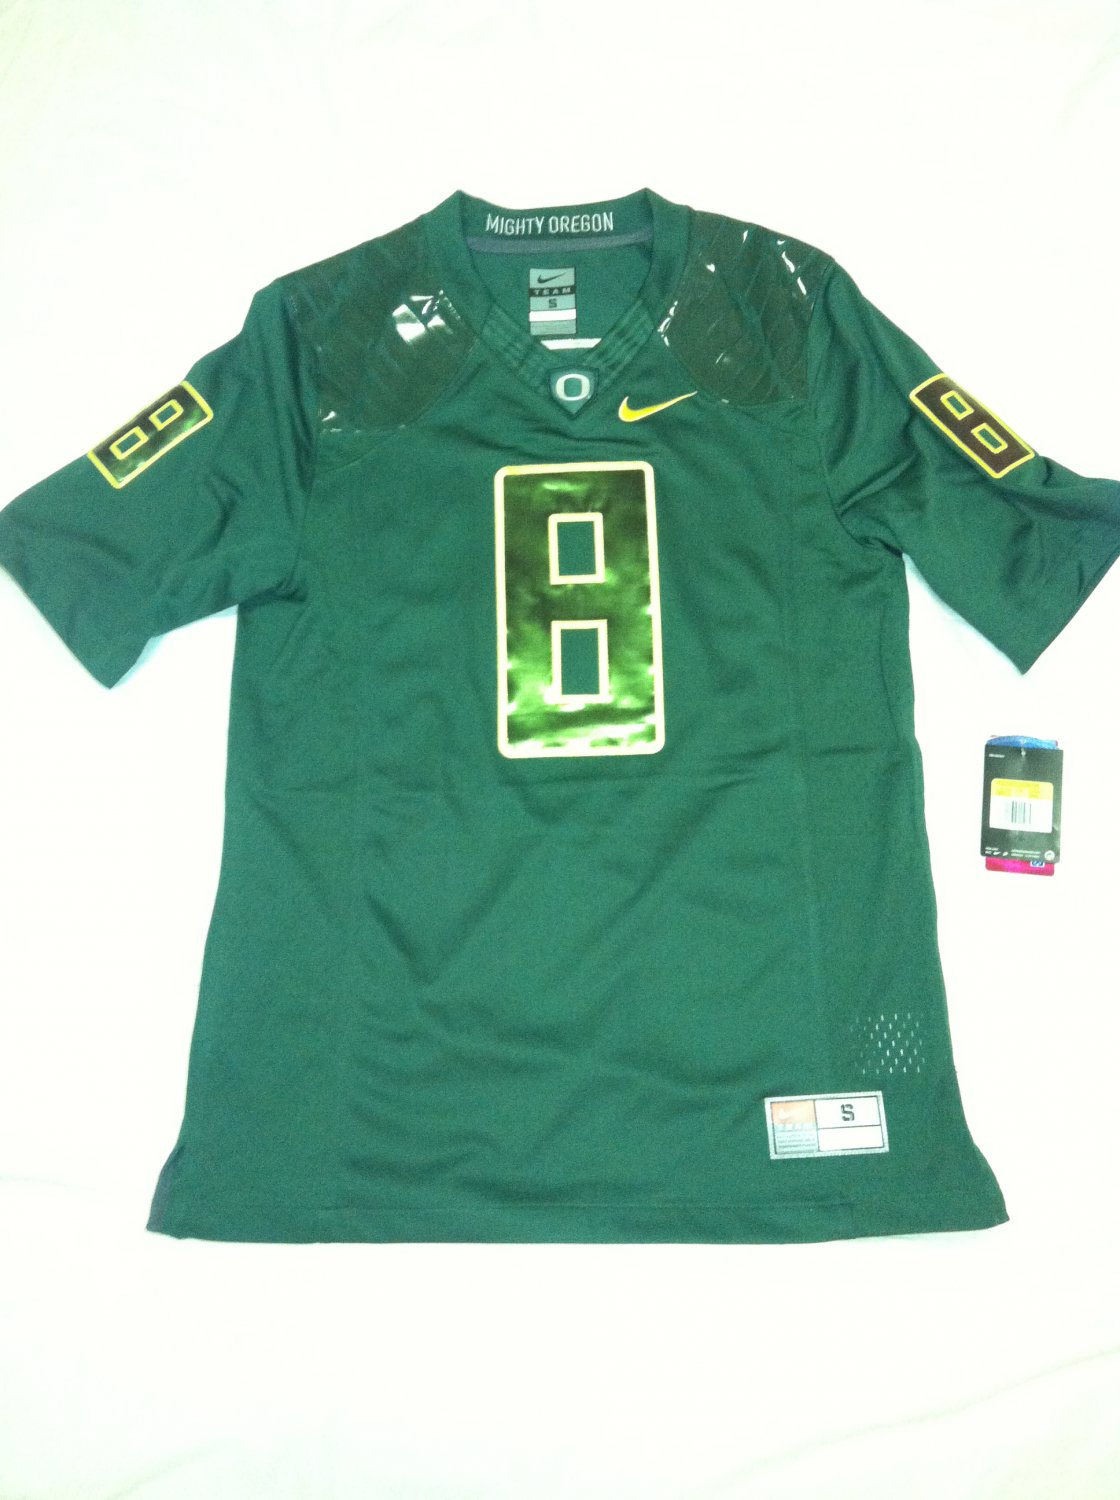 Oregon Ducks #8 (Marcus Mariota) Green-on-Green Large Nike Limited Jersey